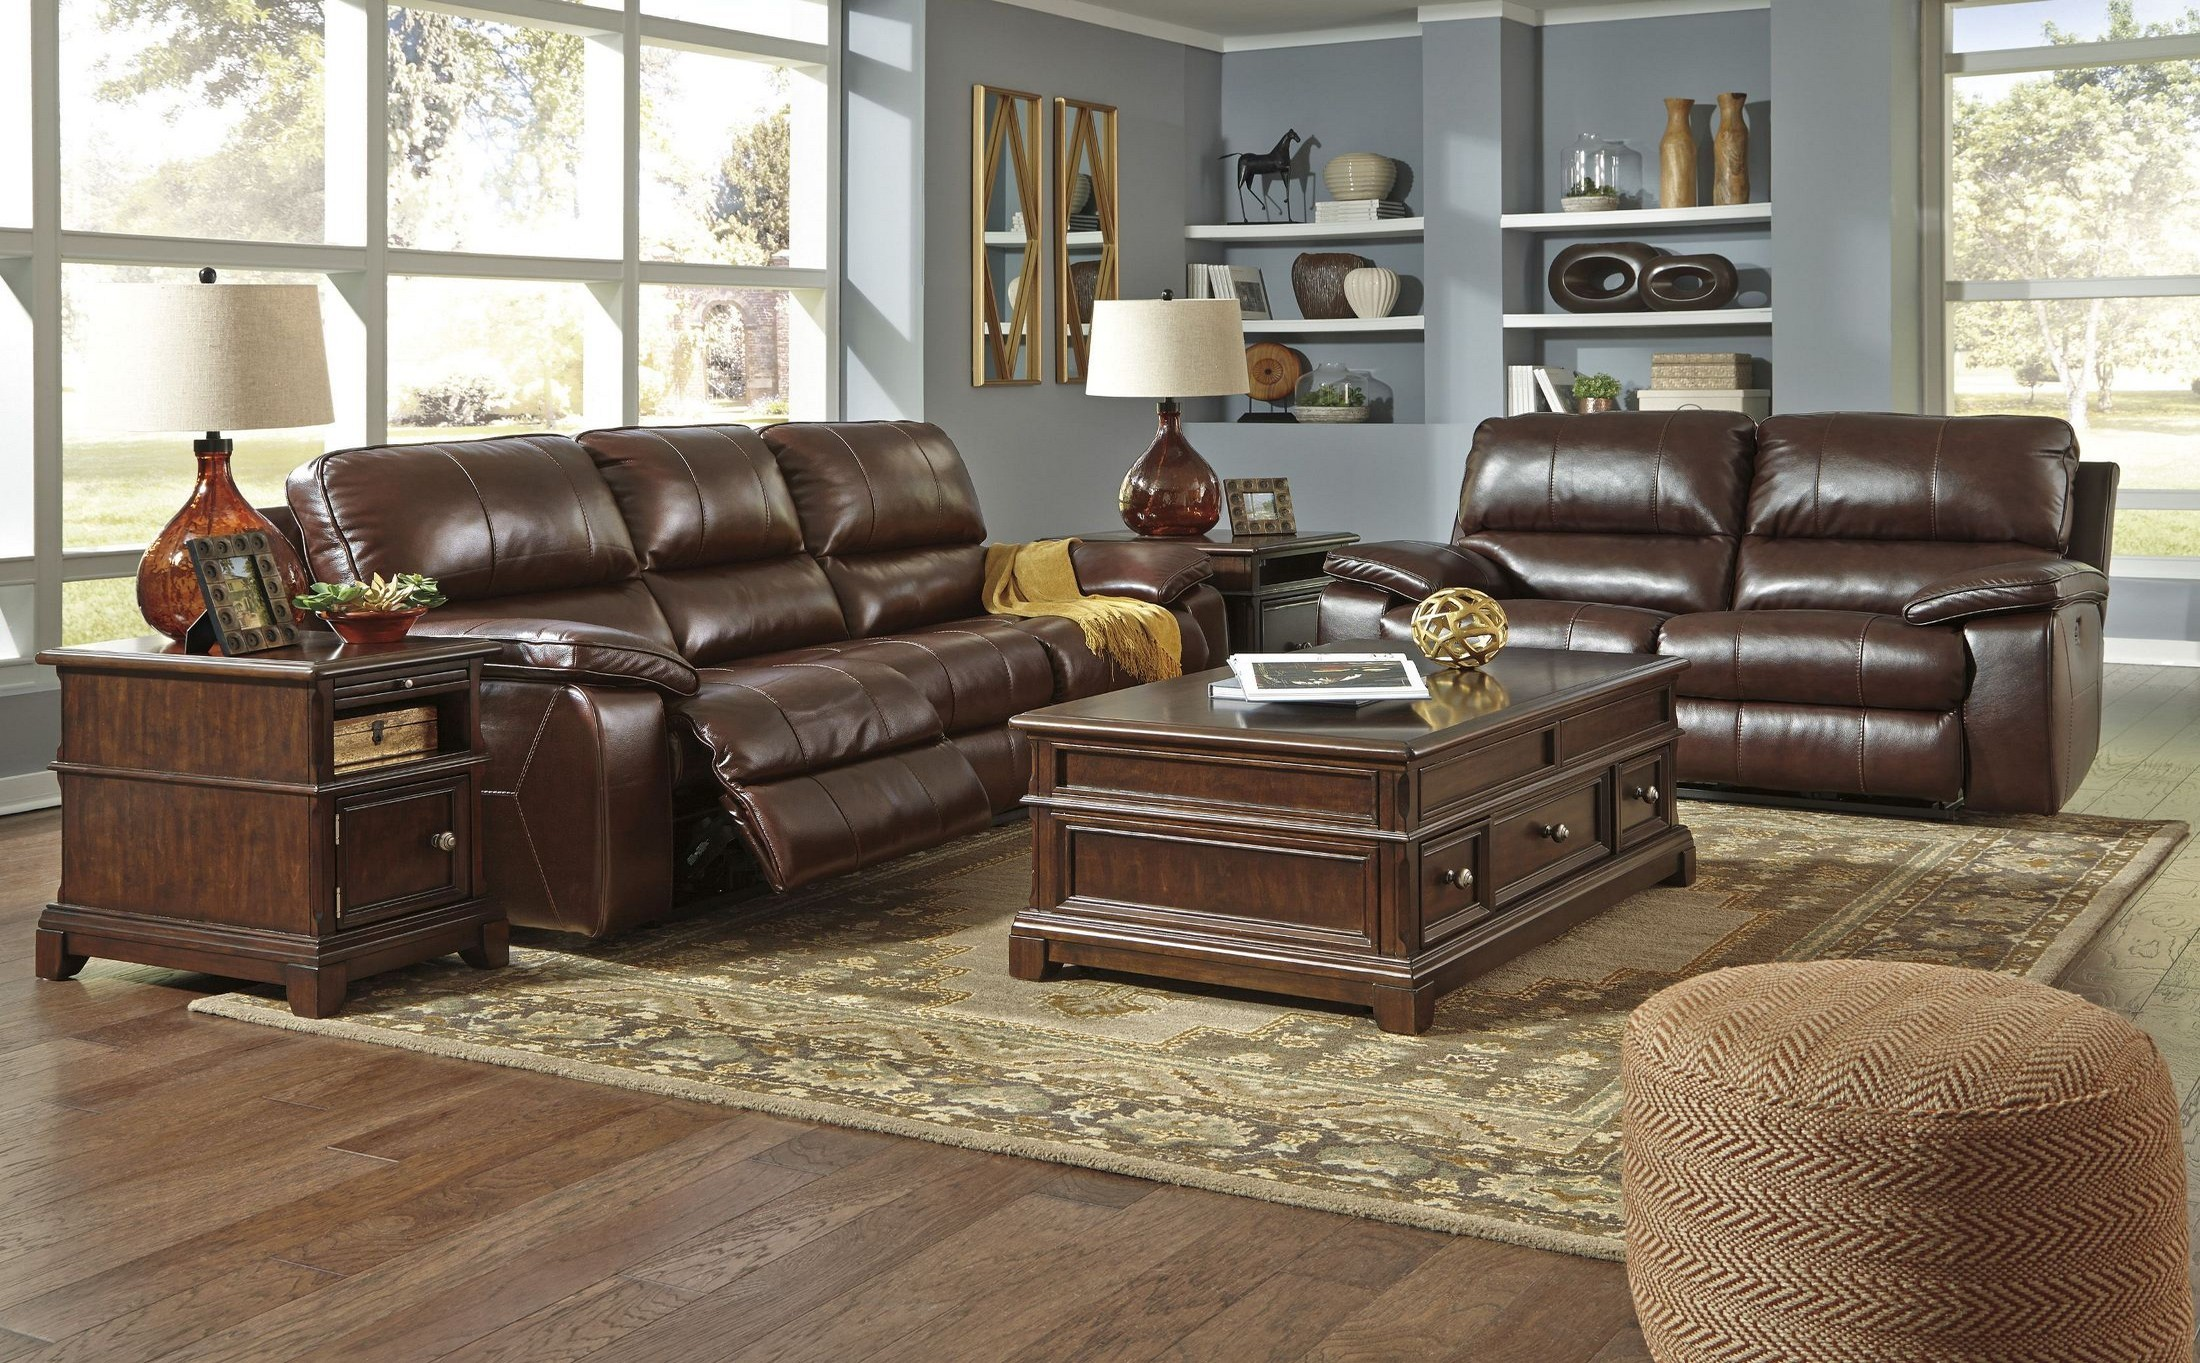 1930390. Transister Coffee Power Reclining Living Room Set from Ashley